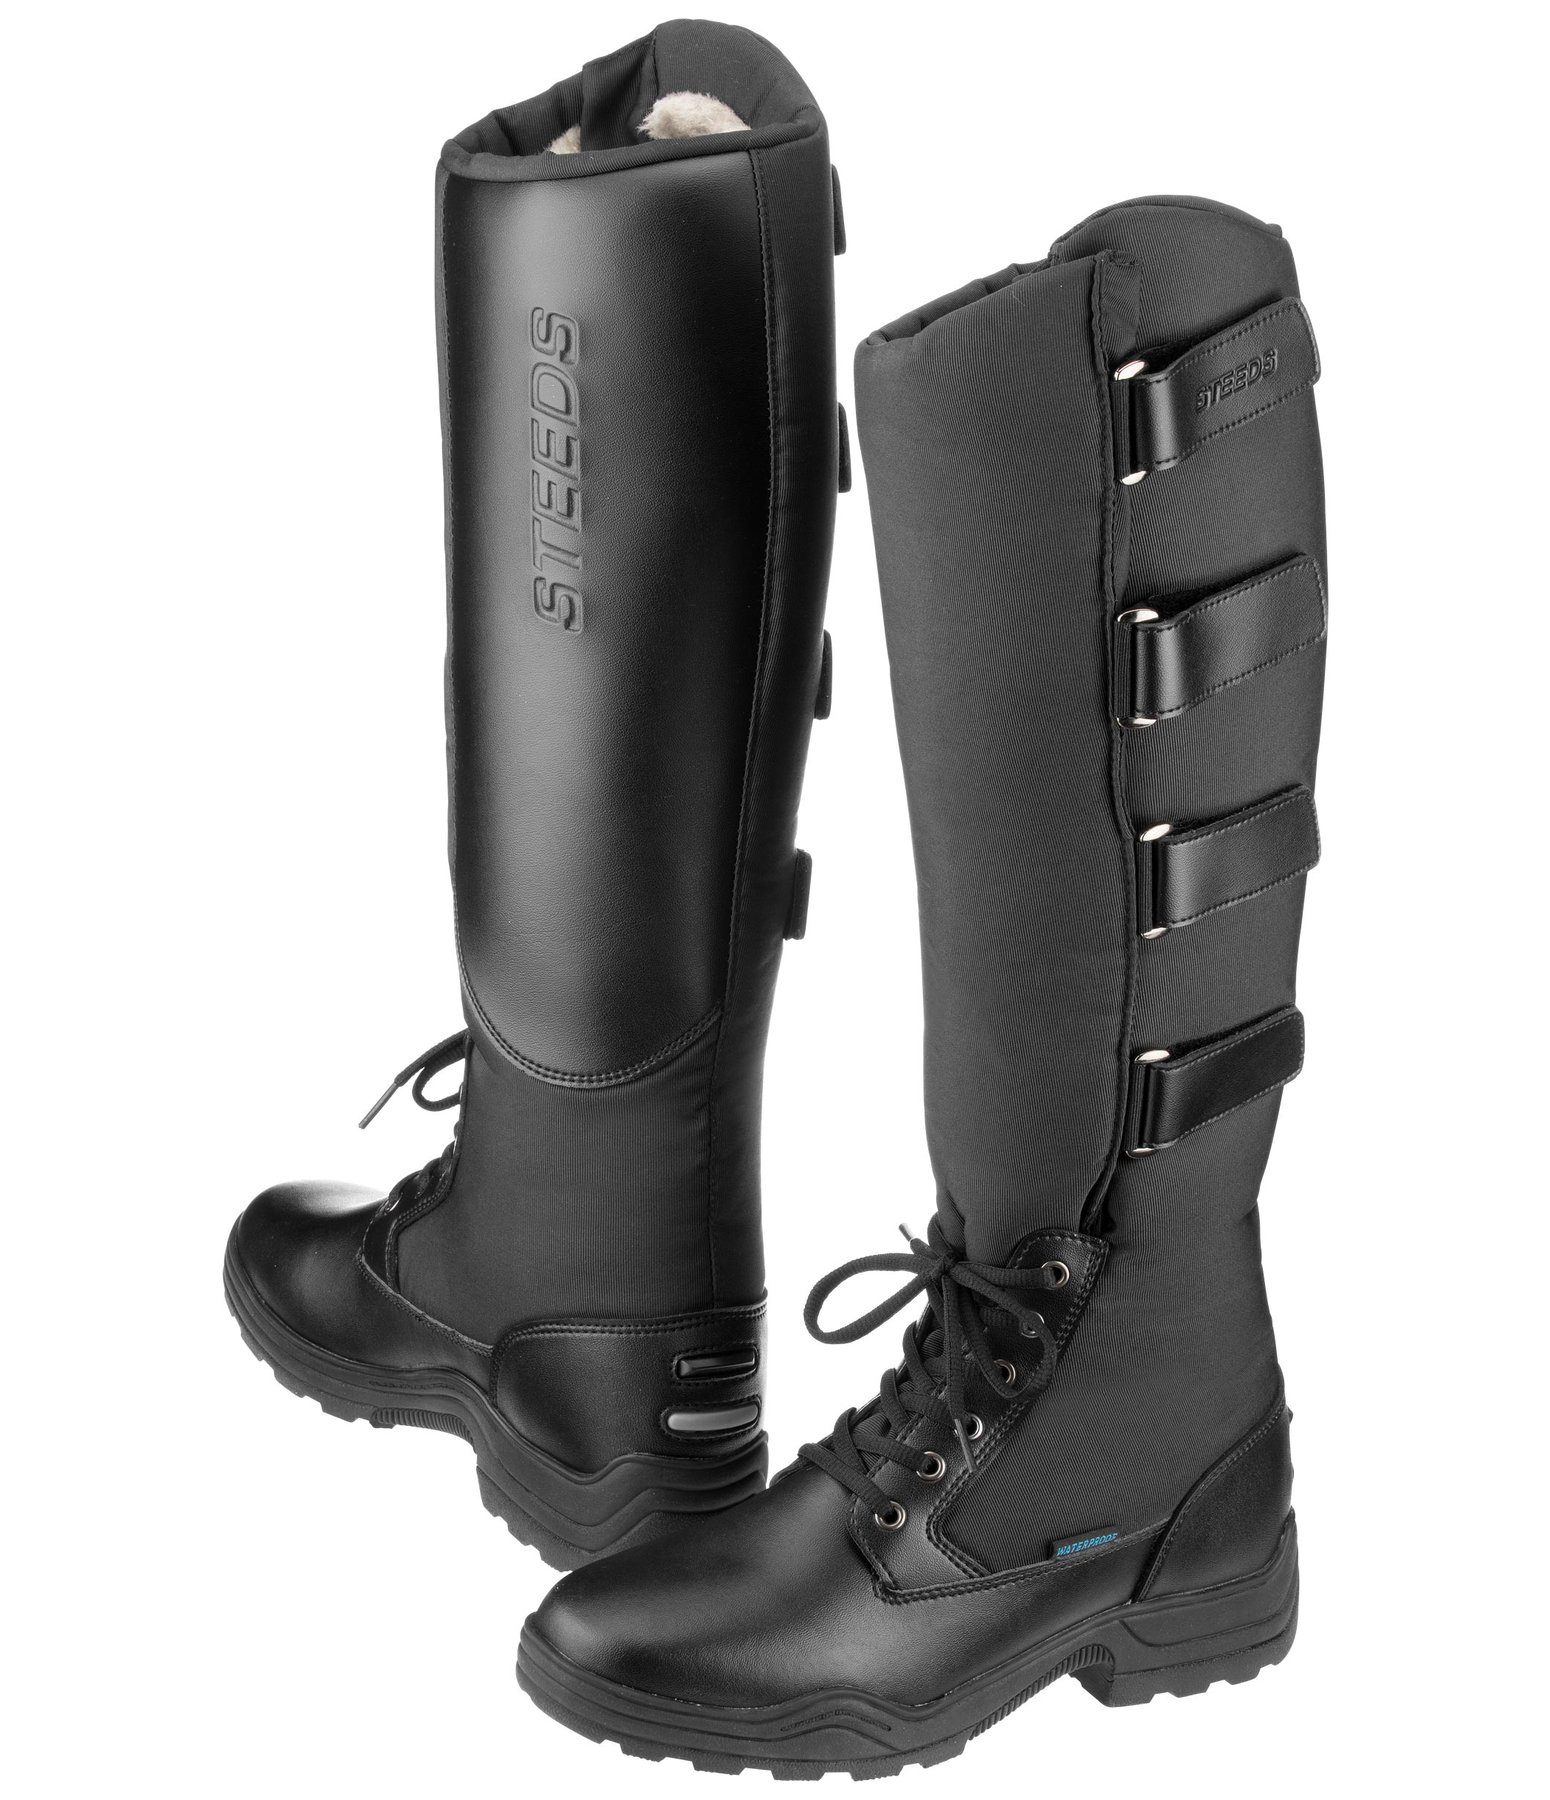 Bottes d'hiver thermiques  Rider XV